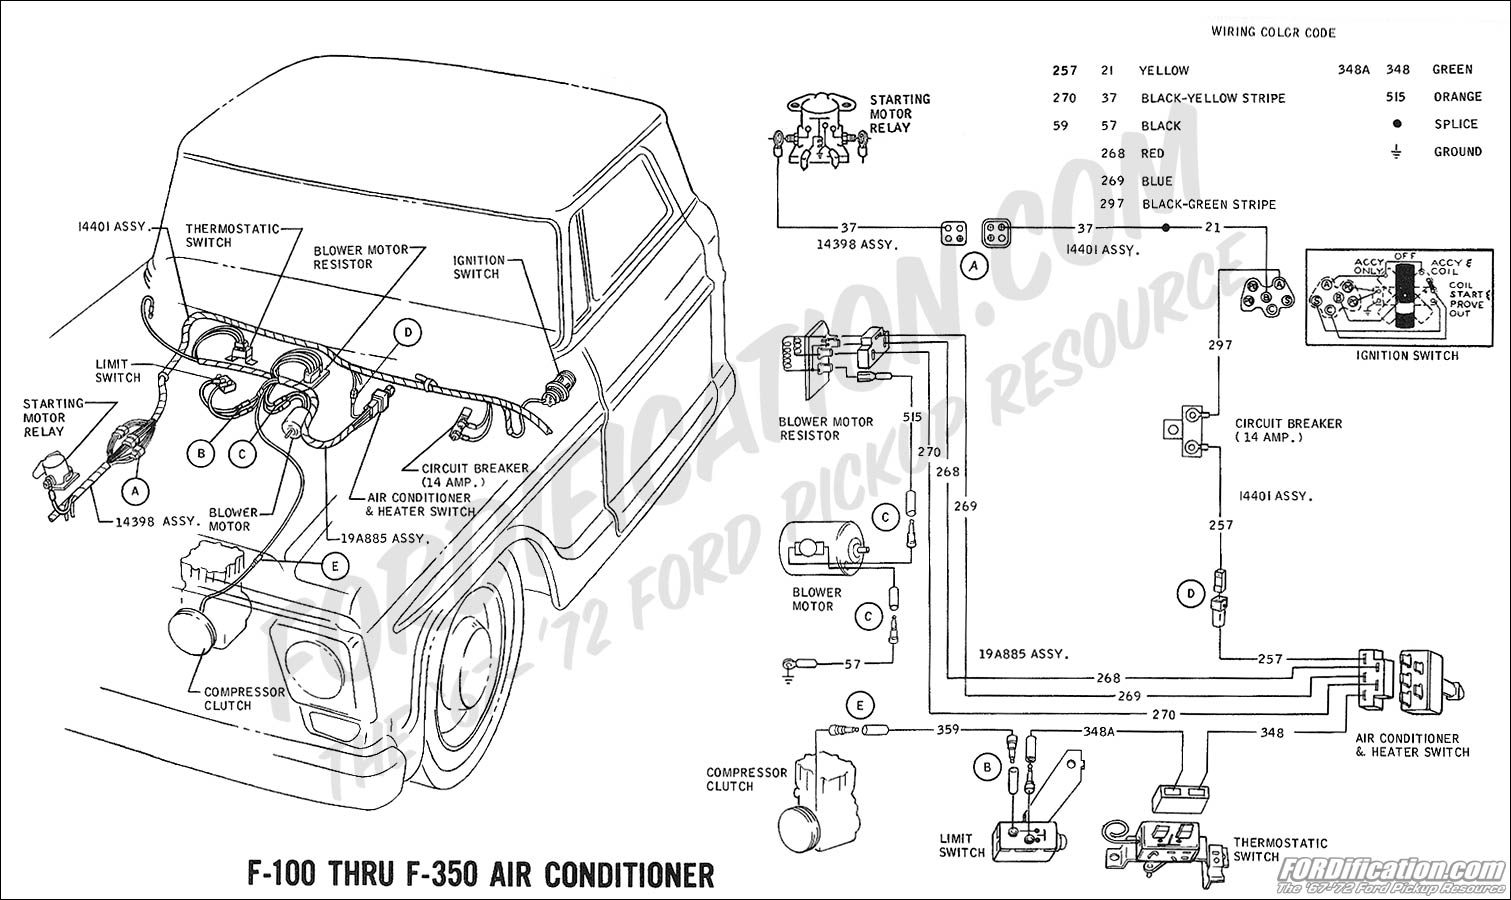 Ford Truck Technical Drawings And Schematics Section H Wiring F250 Diagram 1969 F 100 Thru 350 Air Conditioner